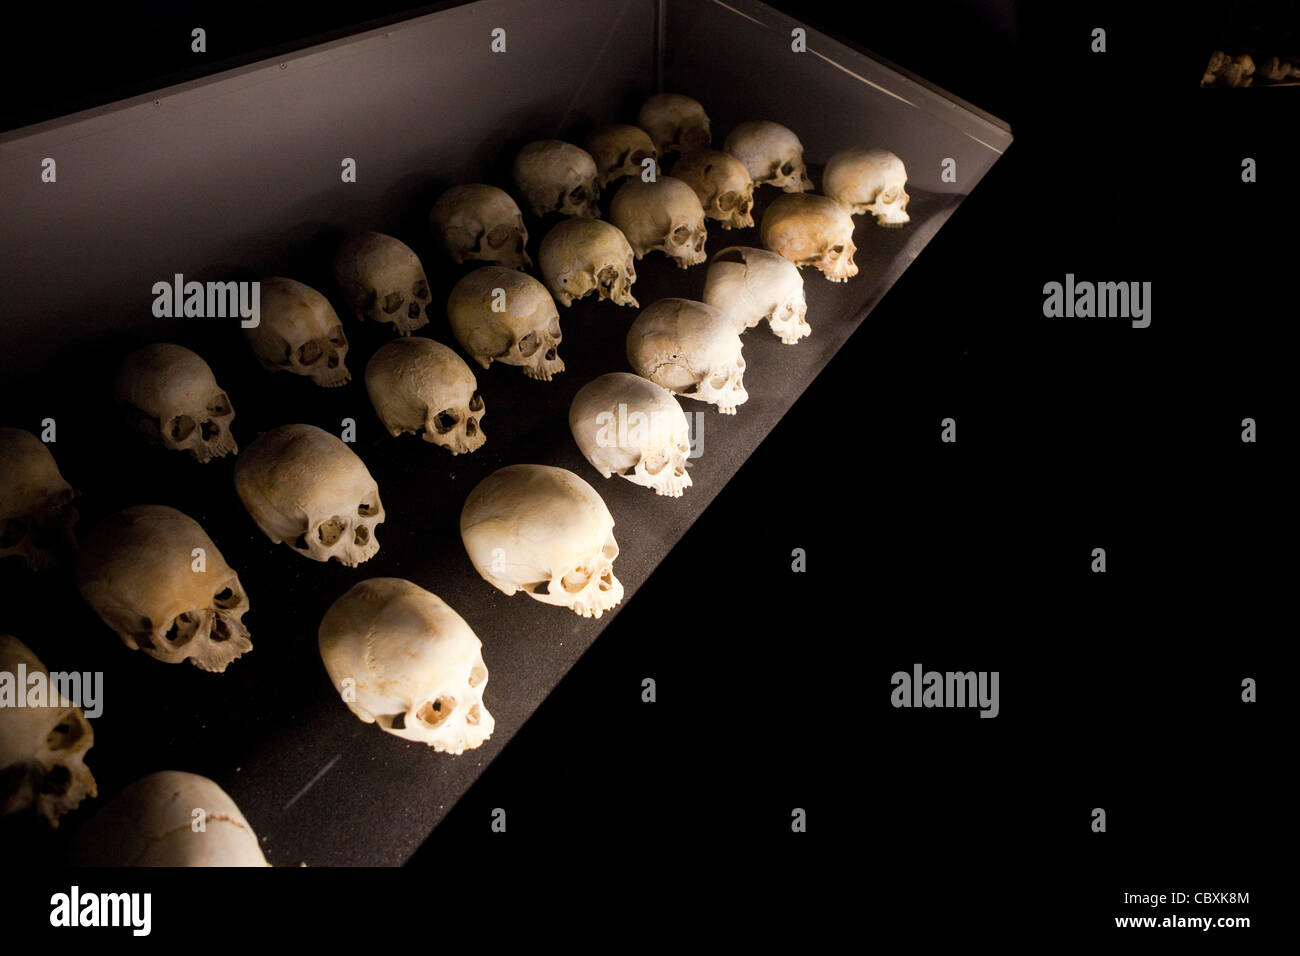 Skulls of victims of Rwanda's 1994 genocide lie in the Kigali Genocide Memorial Center. - Stock Image